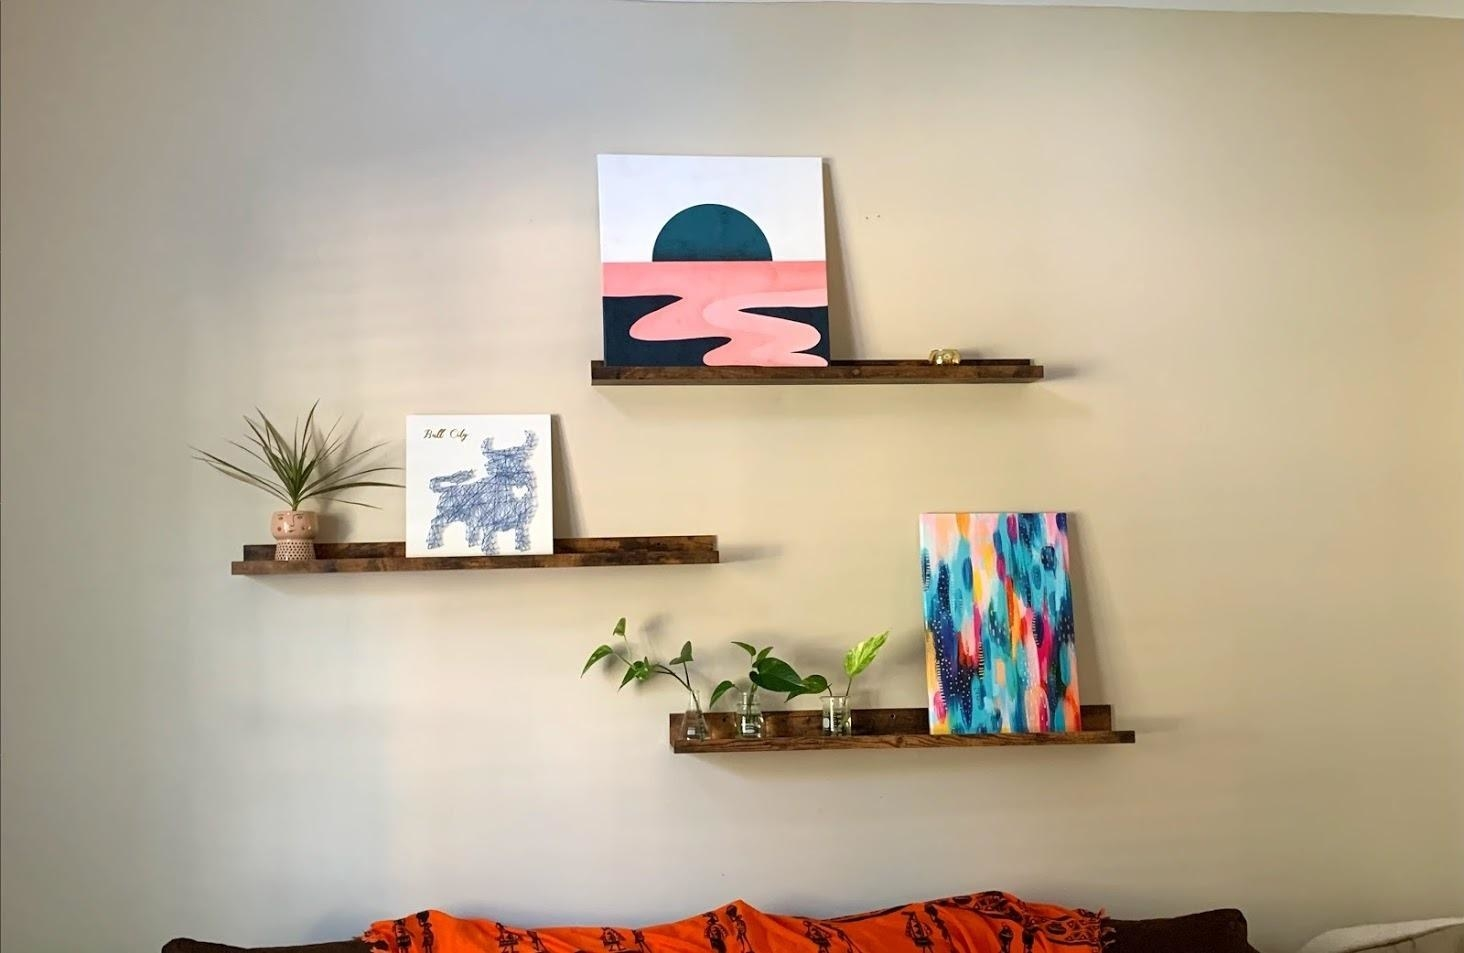 the floating shelves in a living room above a couch